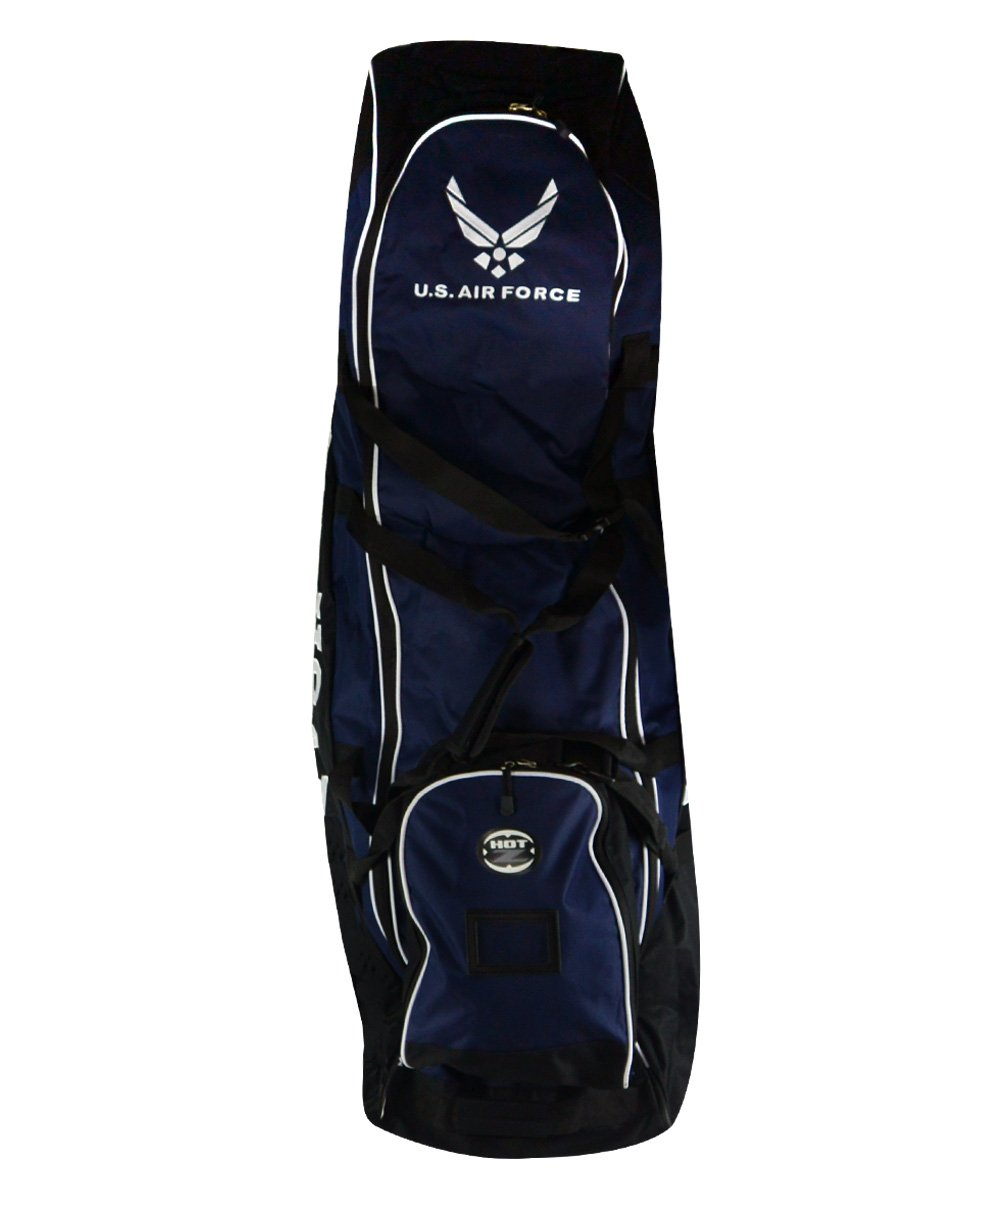 Hot-Z Golf Air Force US Military Travel Cover